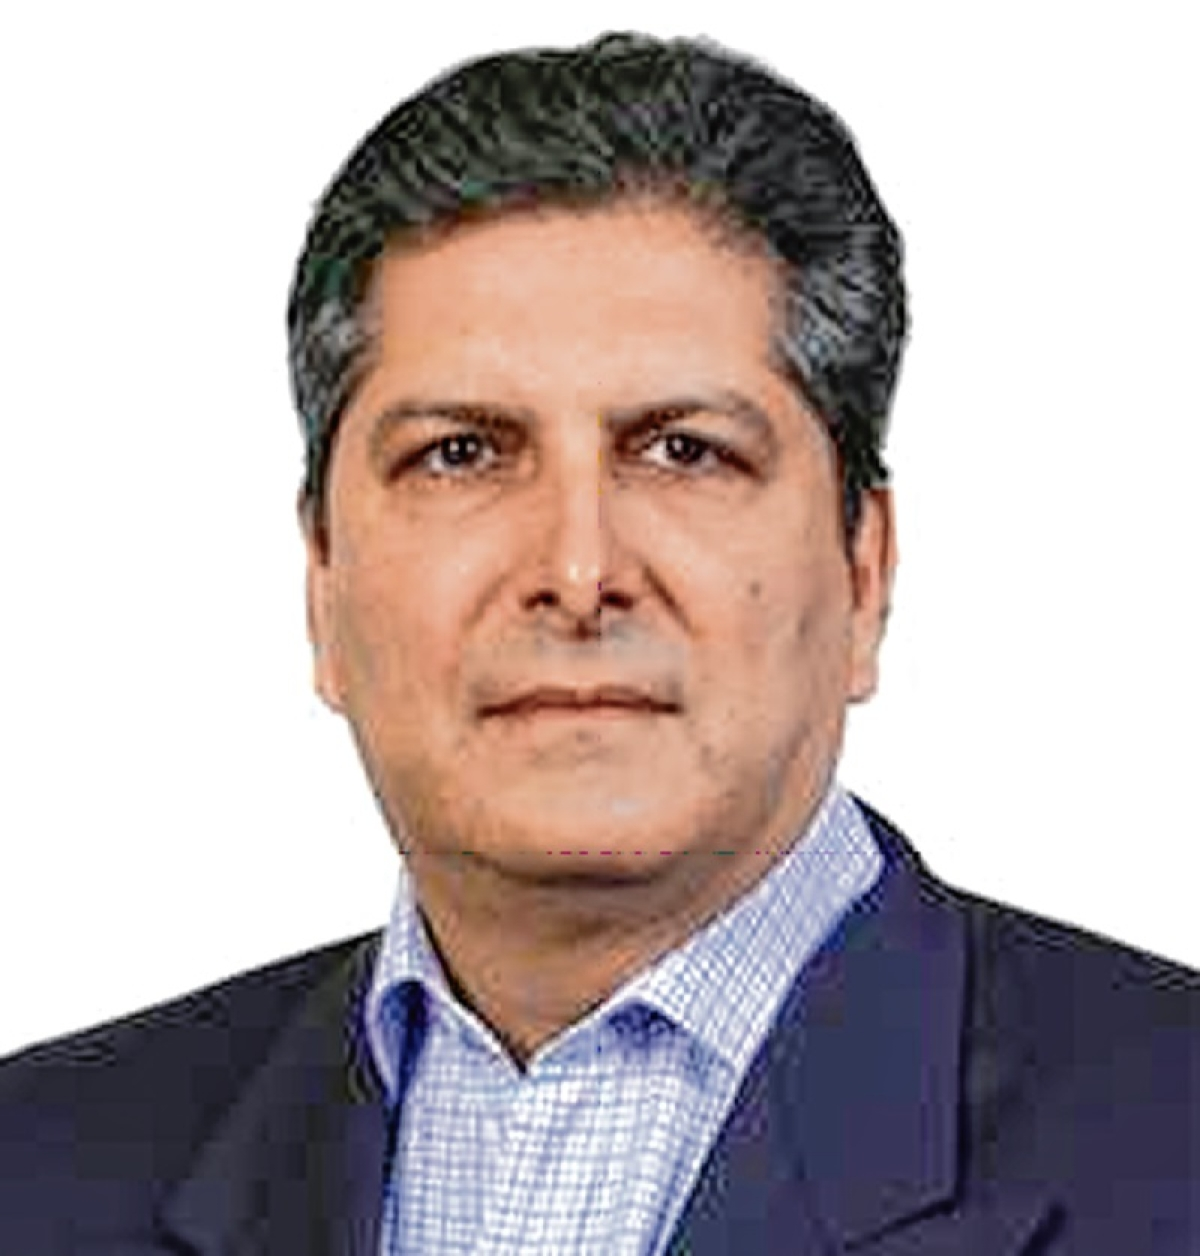 Bankruptcy law will be learning experience for at least 2-3 years: Bahram Vakil, founding partner, AZB & Partners